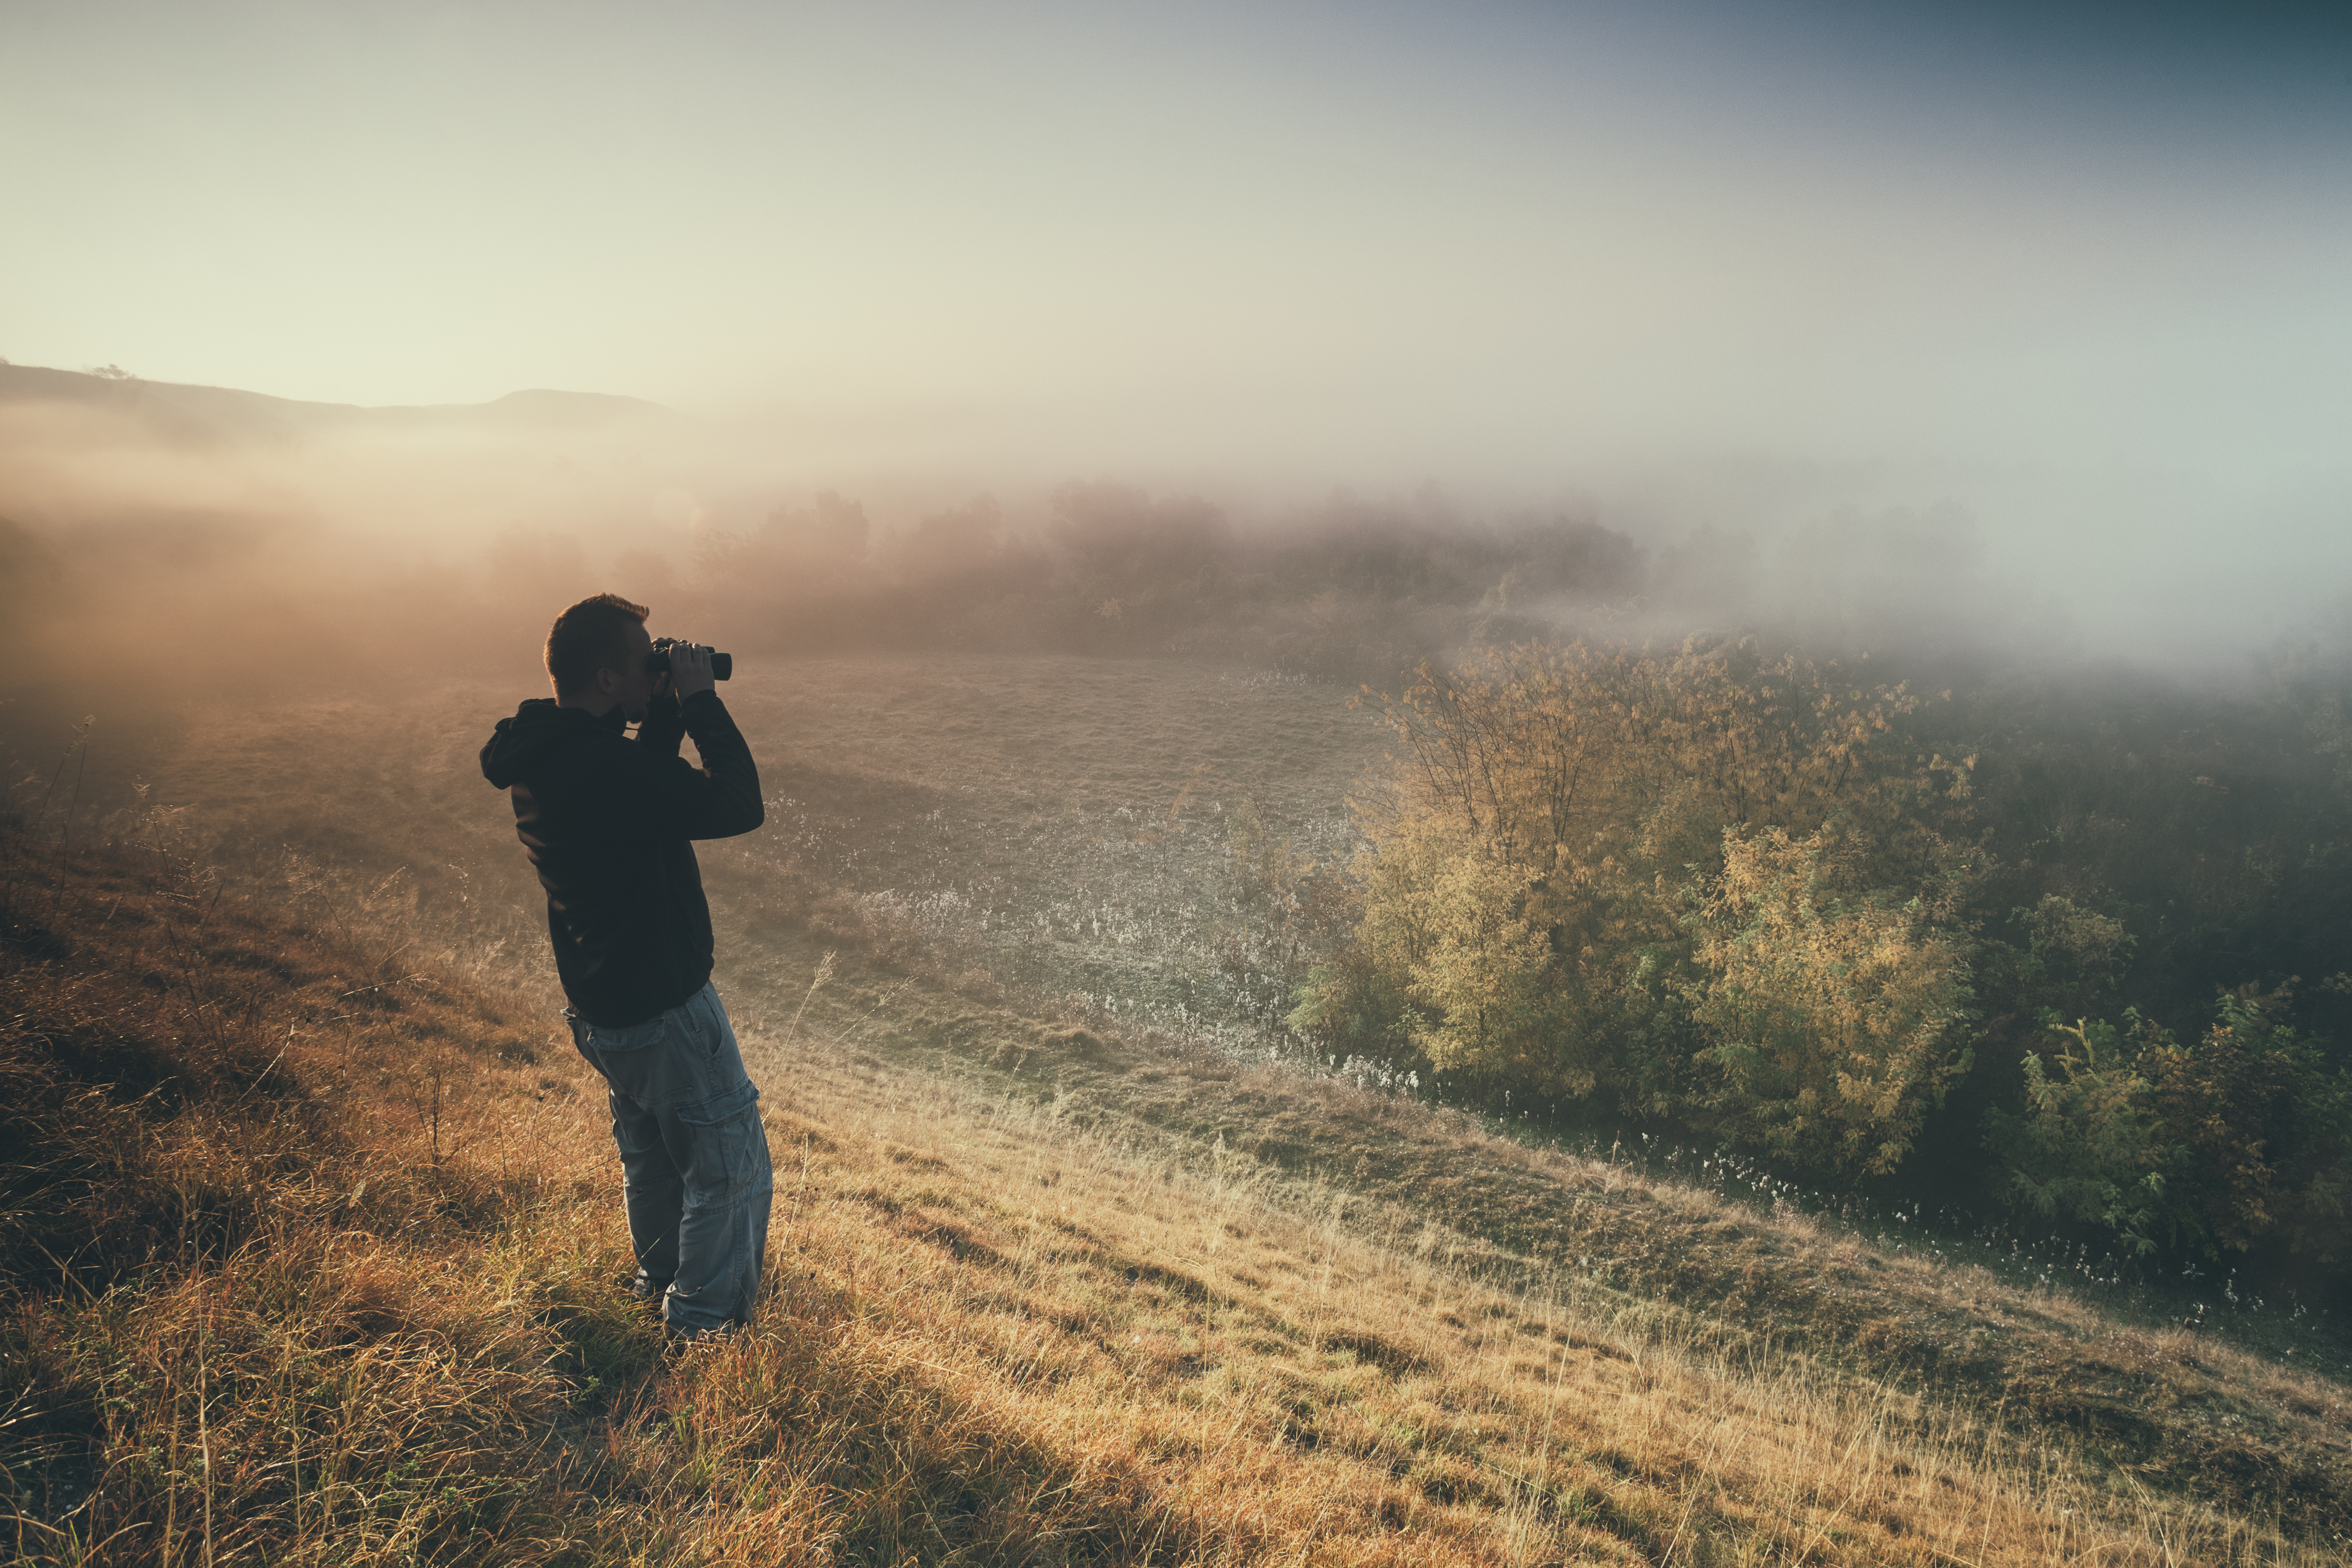 Mladen Mitrinovic by Shutterstock, fraud detection, a man kooking at misty view with binoculars